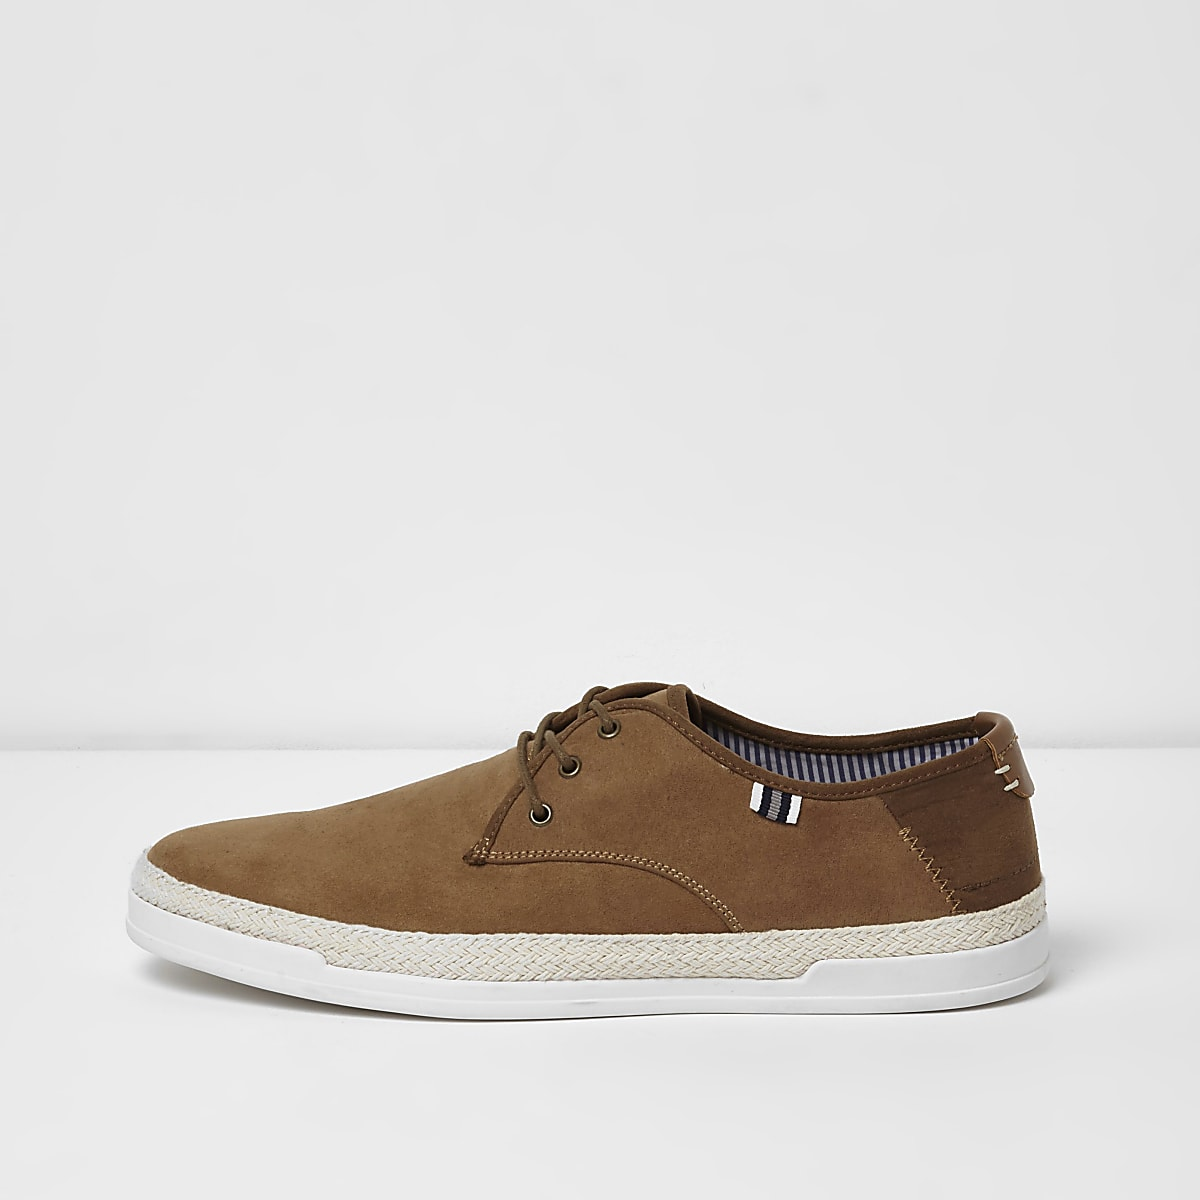 Brown espadrille trim lace-up plimsolls